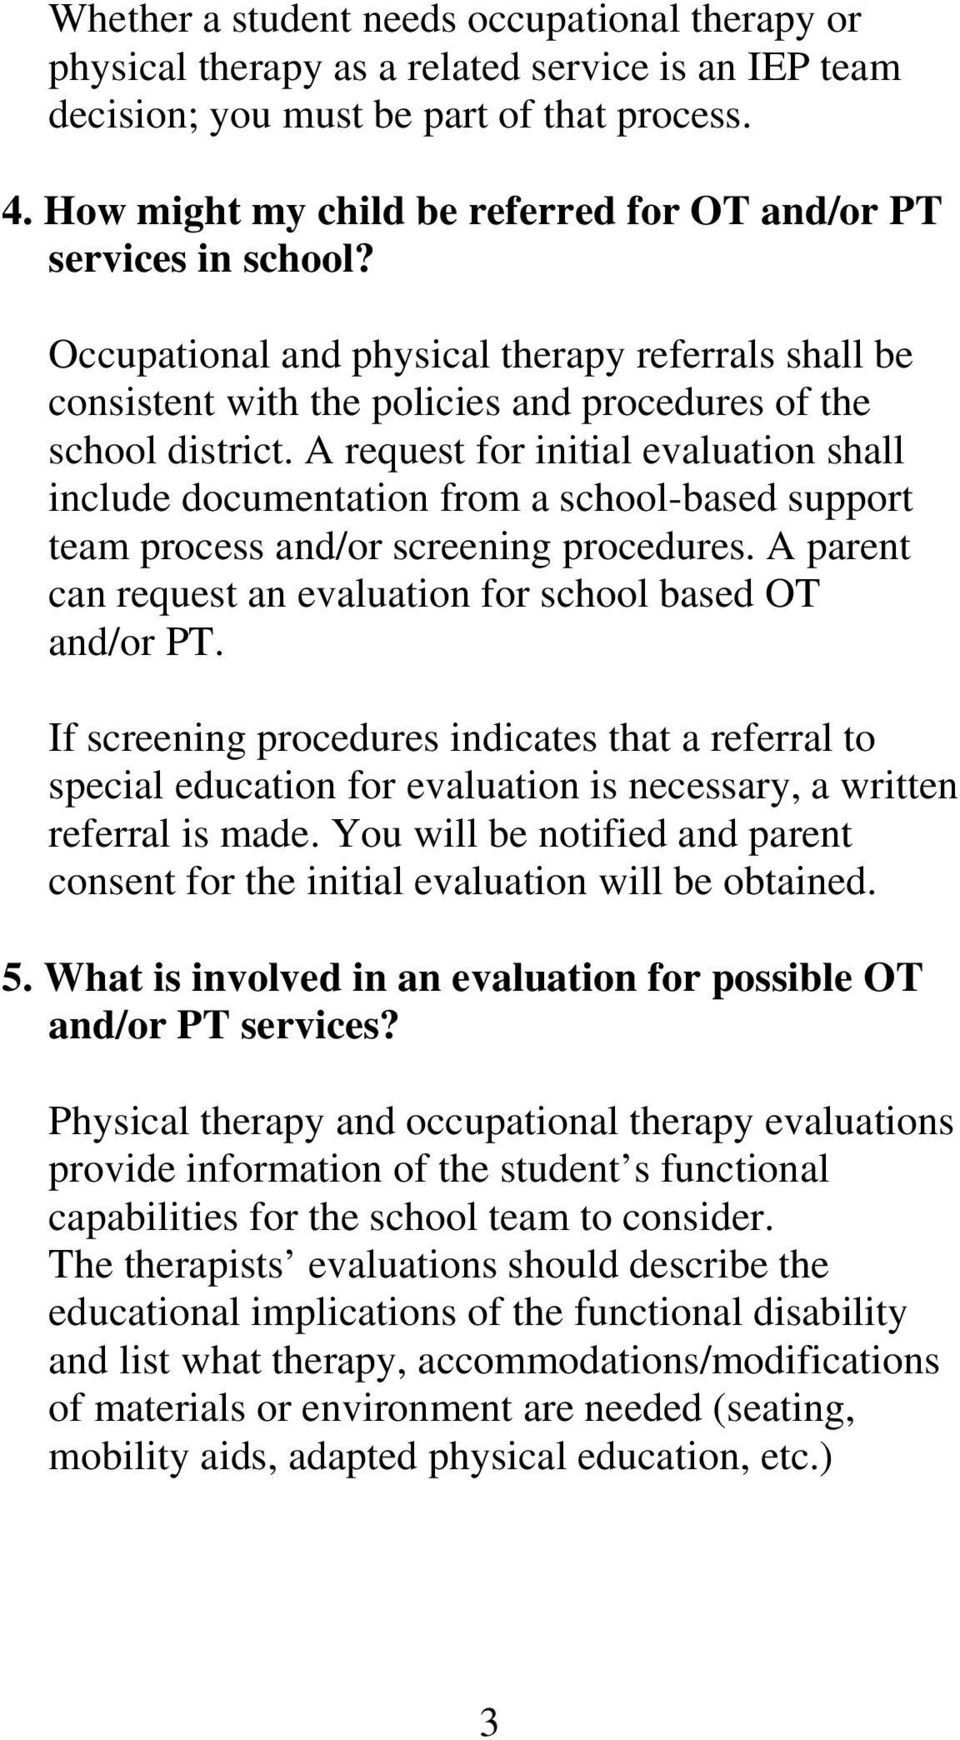 A request for initial evaluation shall include documentation from a school-based support team process and/or screening procedures. A parent can request an evaluation for school based OT and/or PT.